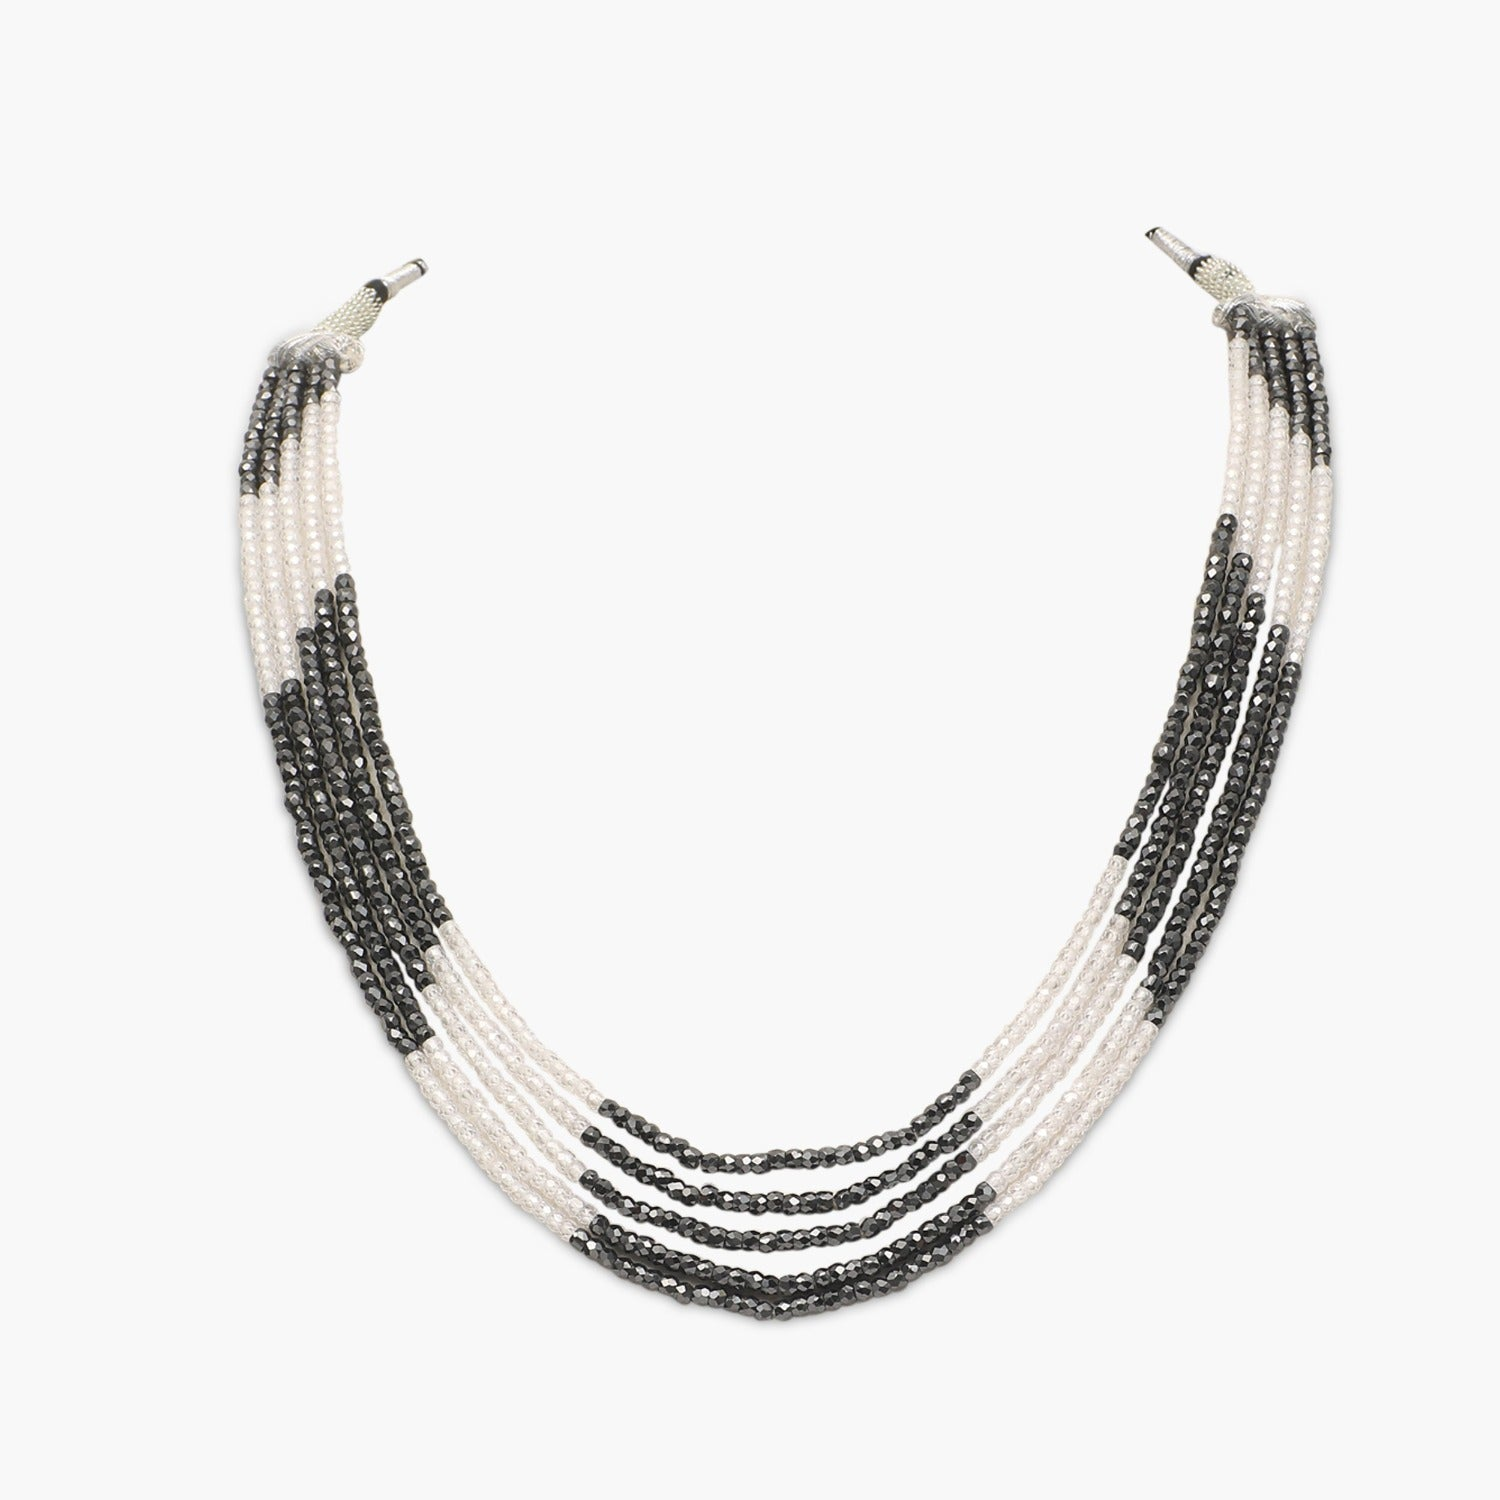 Black with White Faceted Cubic Zirconia Beads Necklace